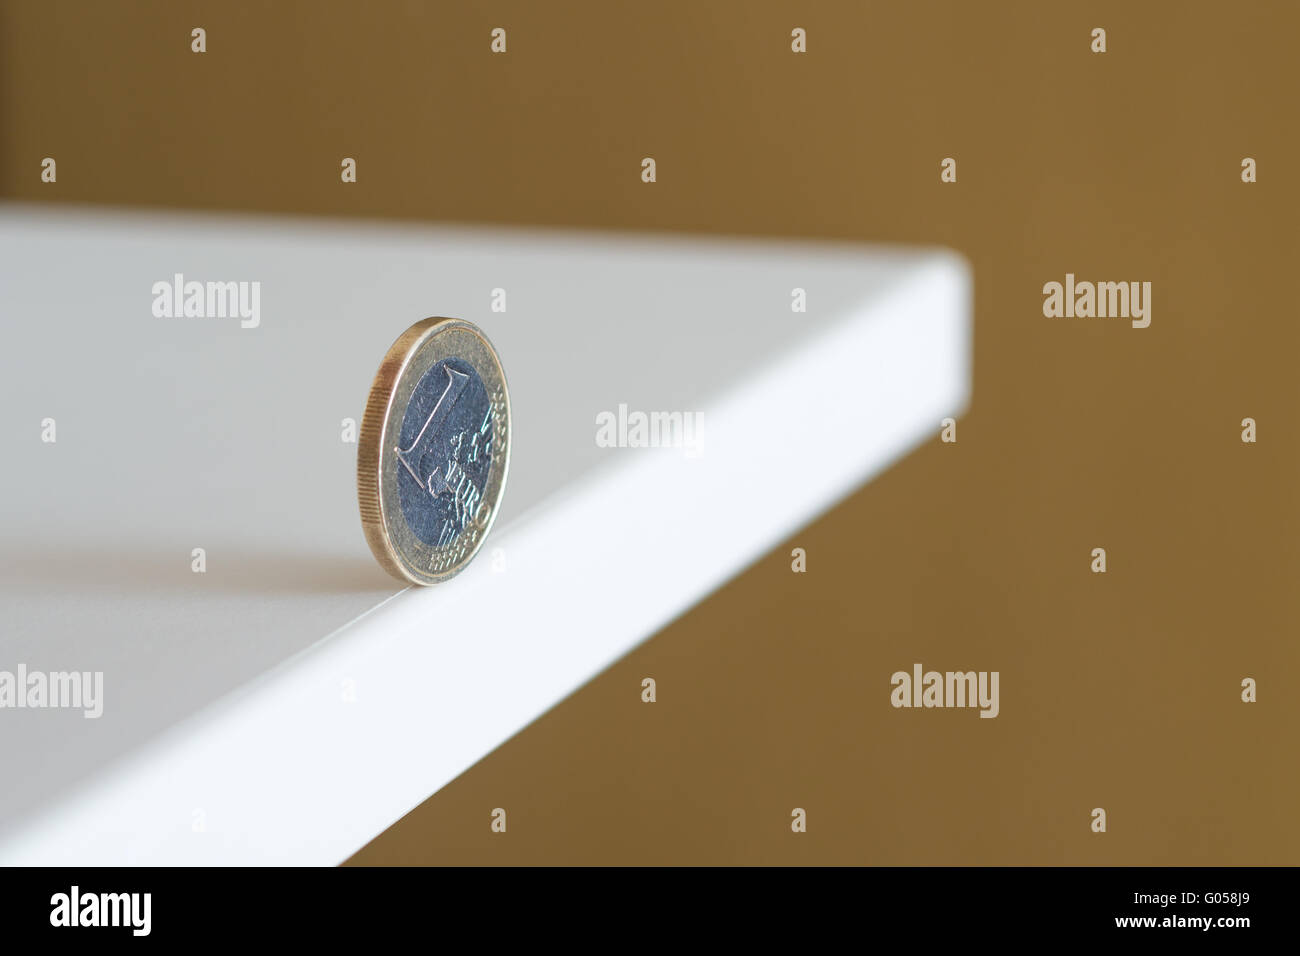 Euro rolls along the edge of the table - Stock Image